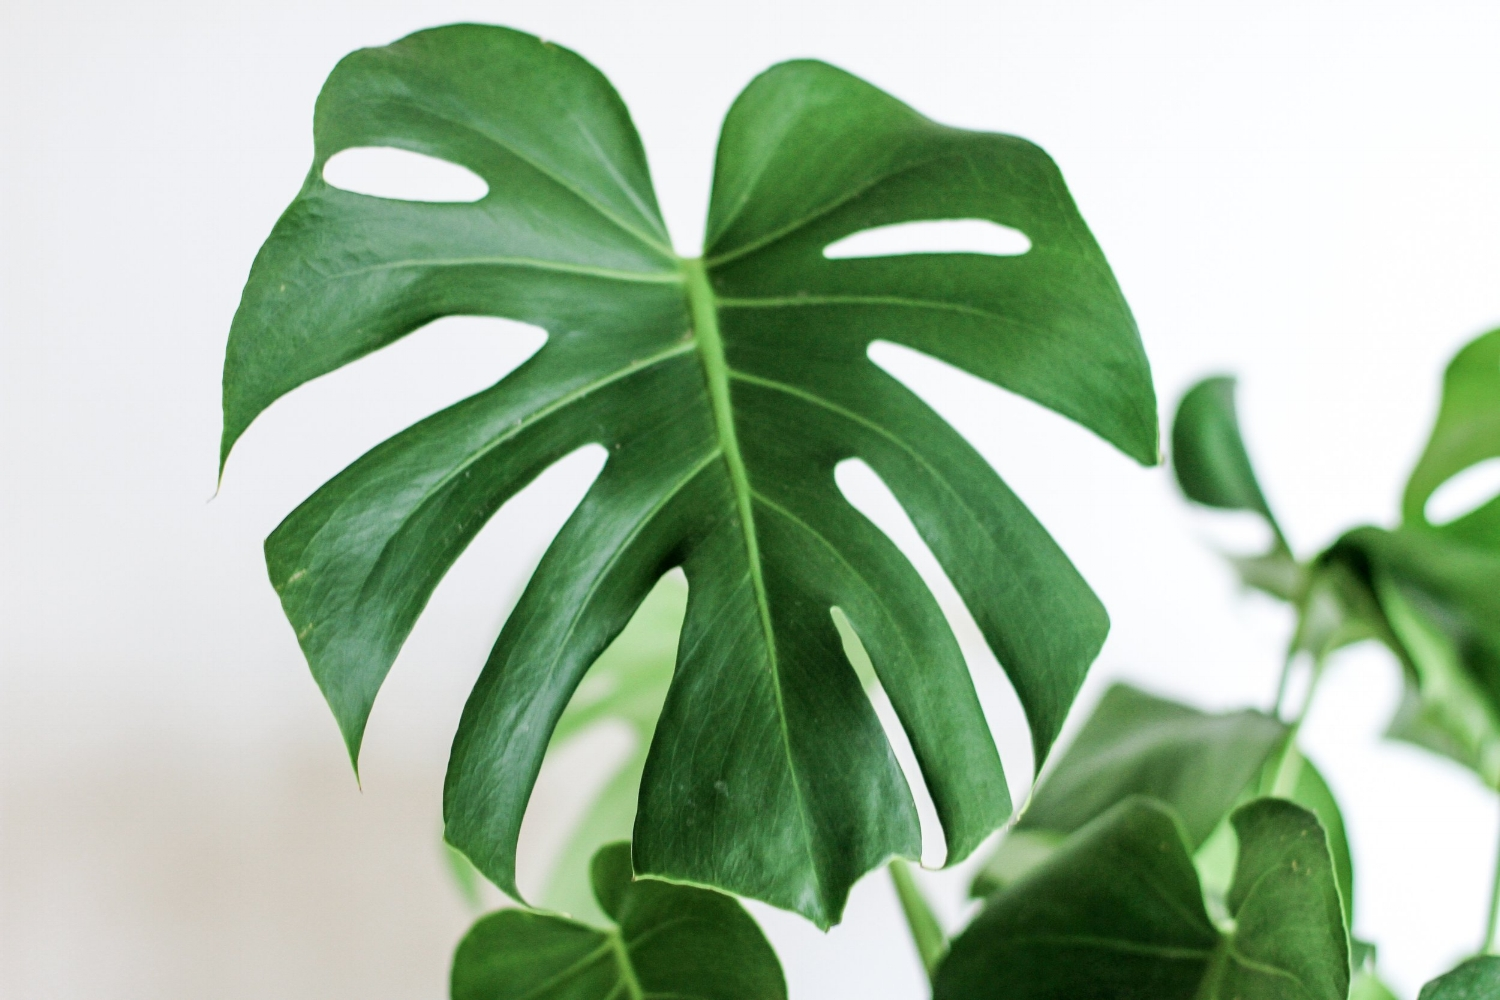 Monstera plants are easily recognized by their large green leaves filled with long holes.